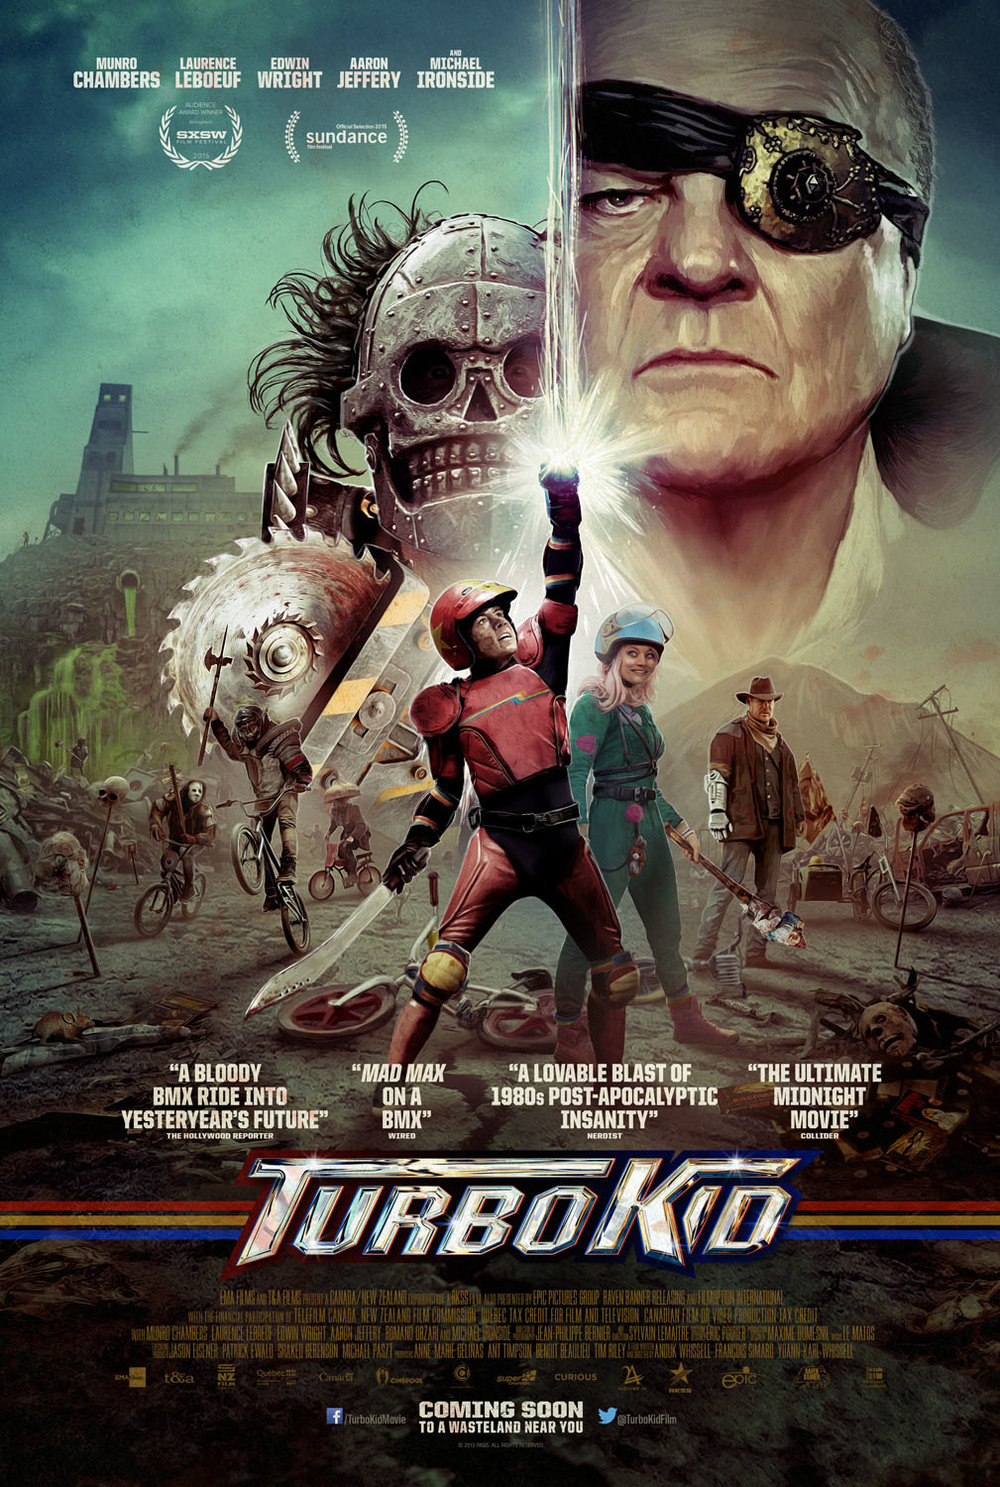 Movie Reviews International Horror And Sci Fi Film Festival Your Trailer May Not Have Been Originally Wired The Way Depicted We A Few Recommendations For February From Matthew Robinson Director Of Arizona Filmmaker Showcase Editor Darkofthematineecom